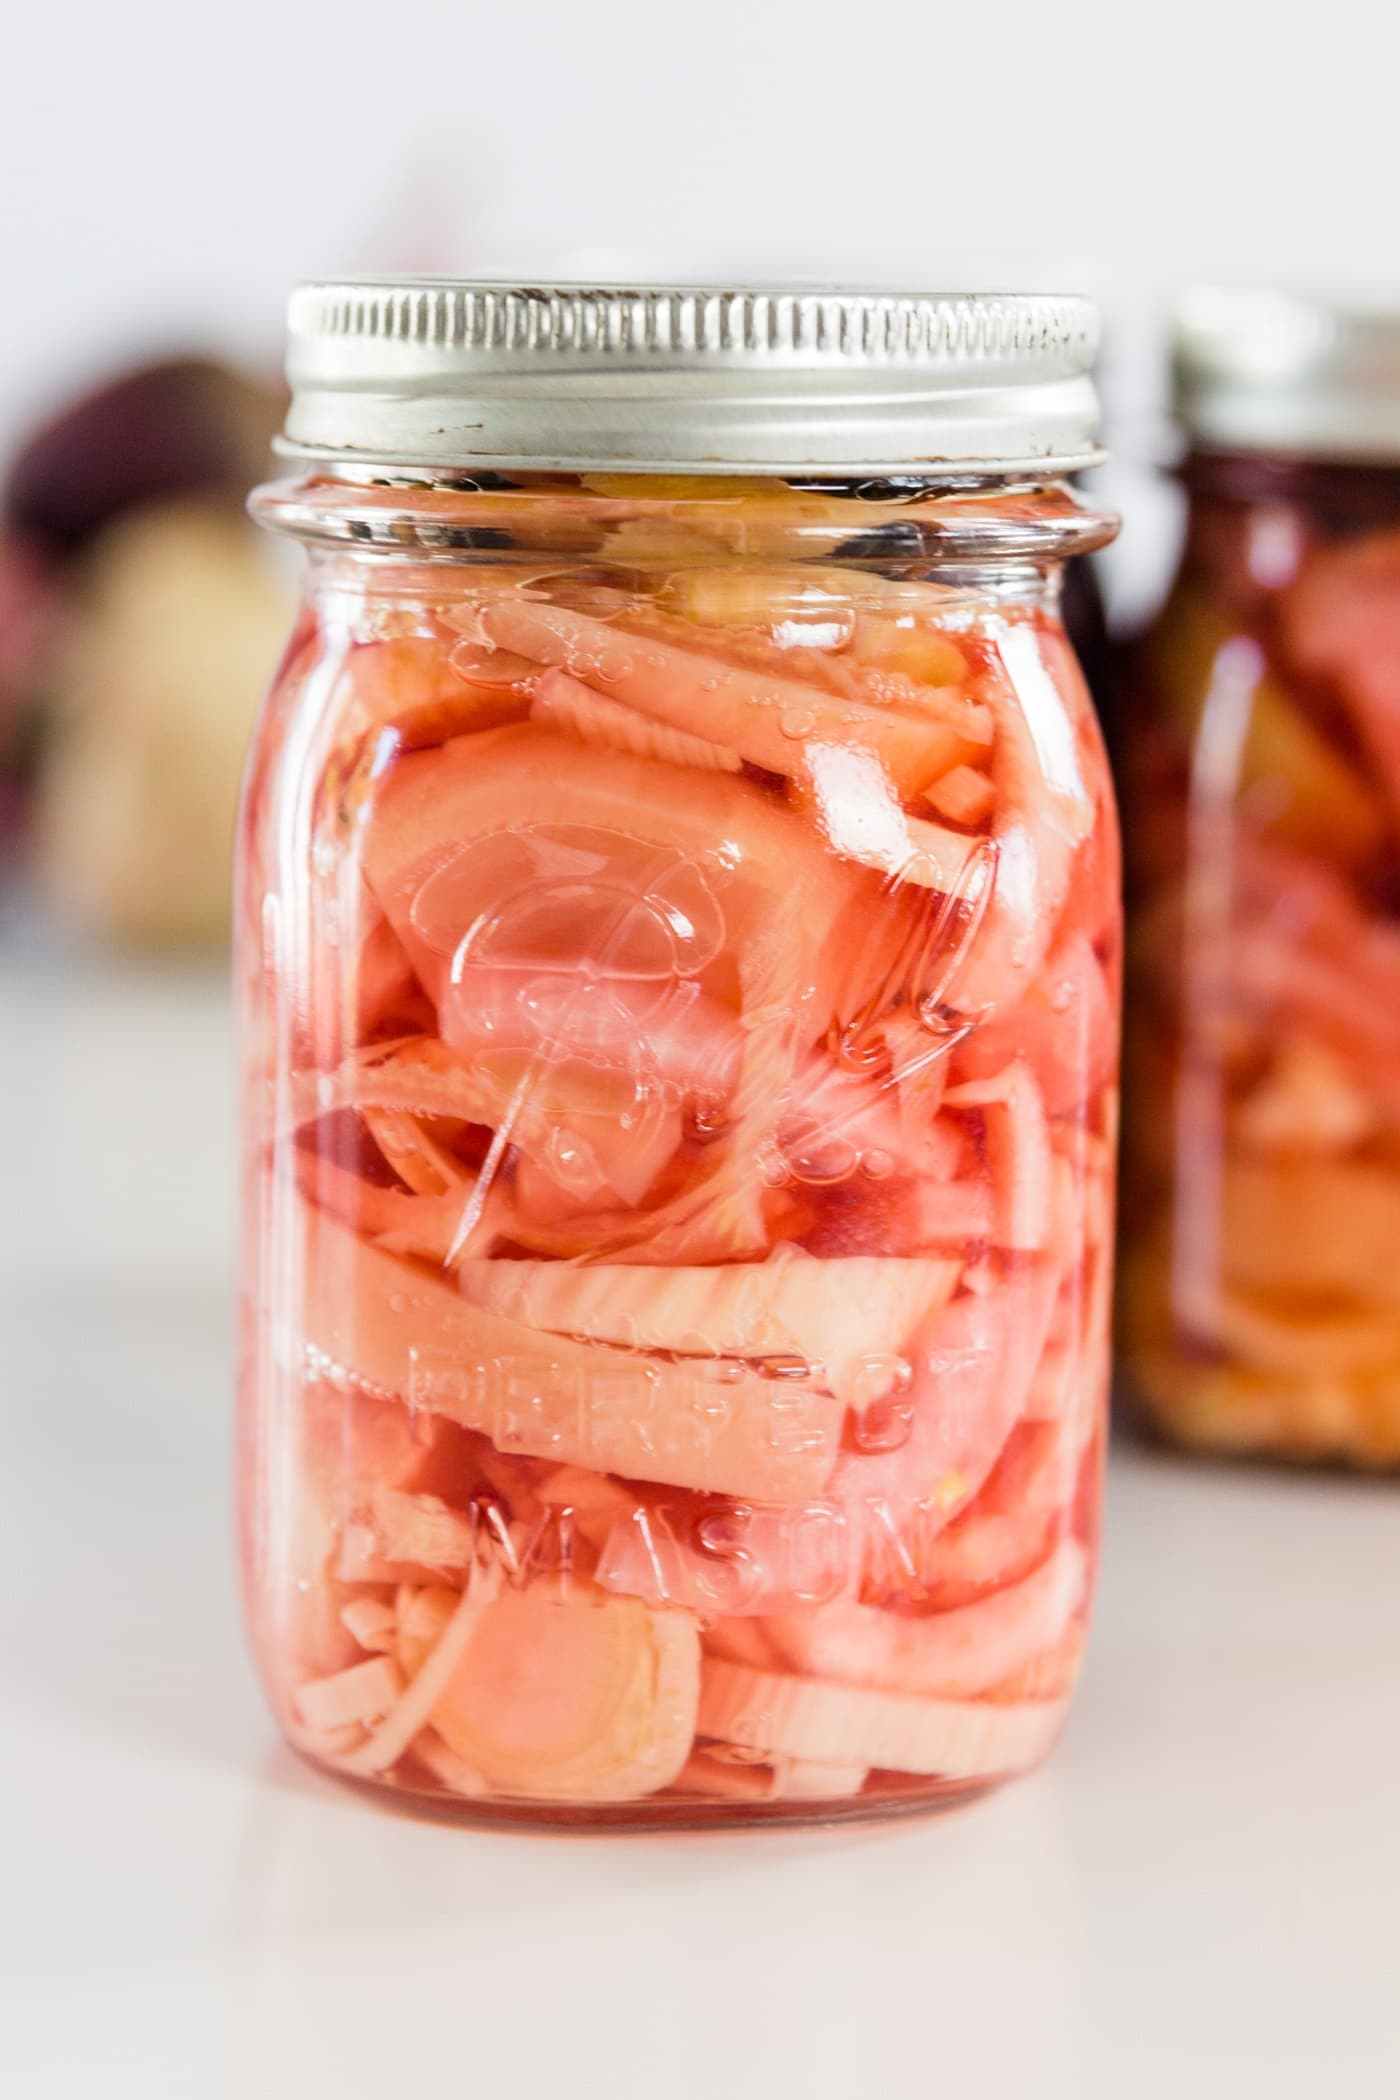 A white and pink canned beet recipe in a Ball canning jar on a white surface with Ball canning jars and beets in background.